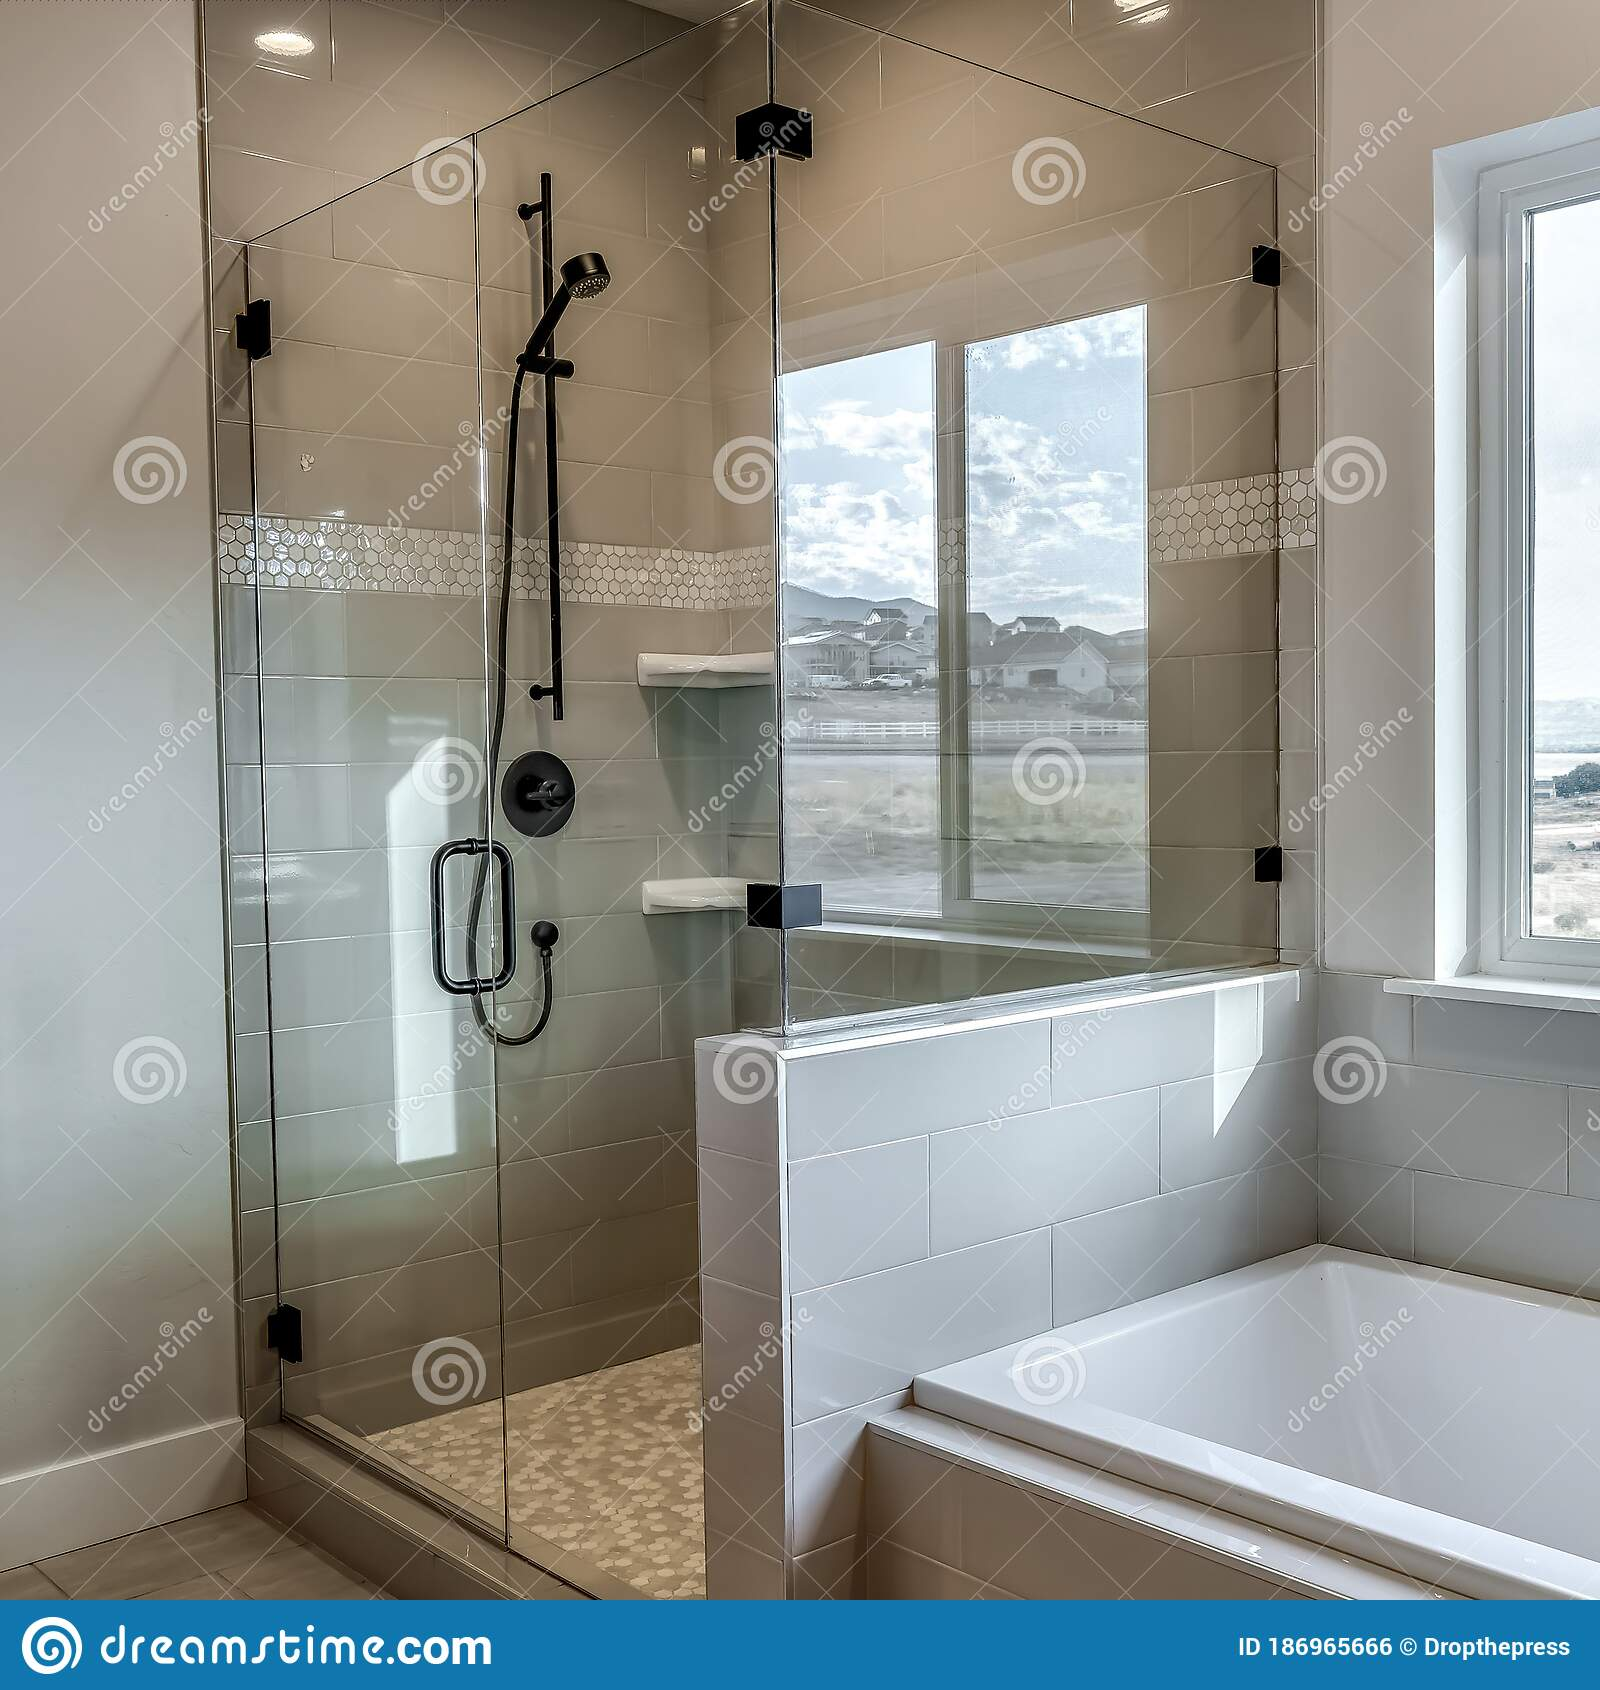 Square Rectangular Walk In Shower Stall With Half Glass Enclosure And Black Shower Head Stock Photo Image Of Shelf Enclosure 186965666